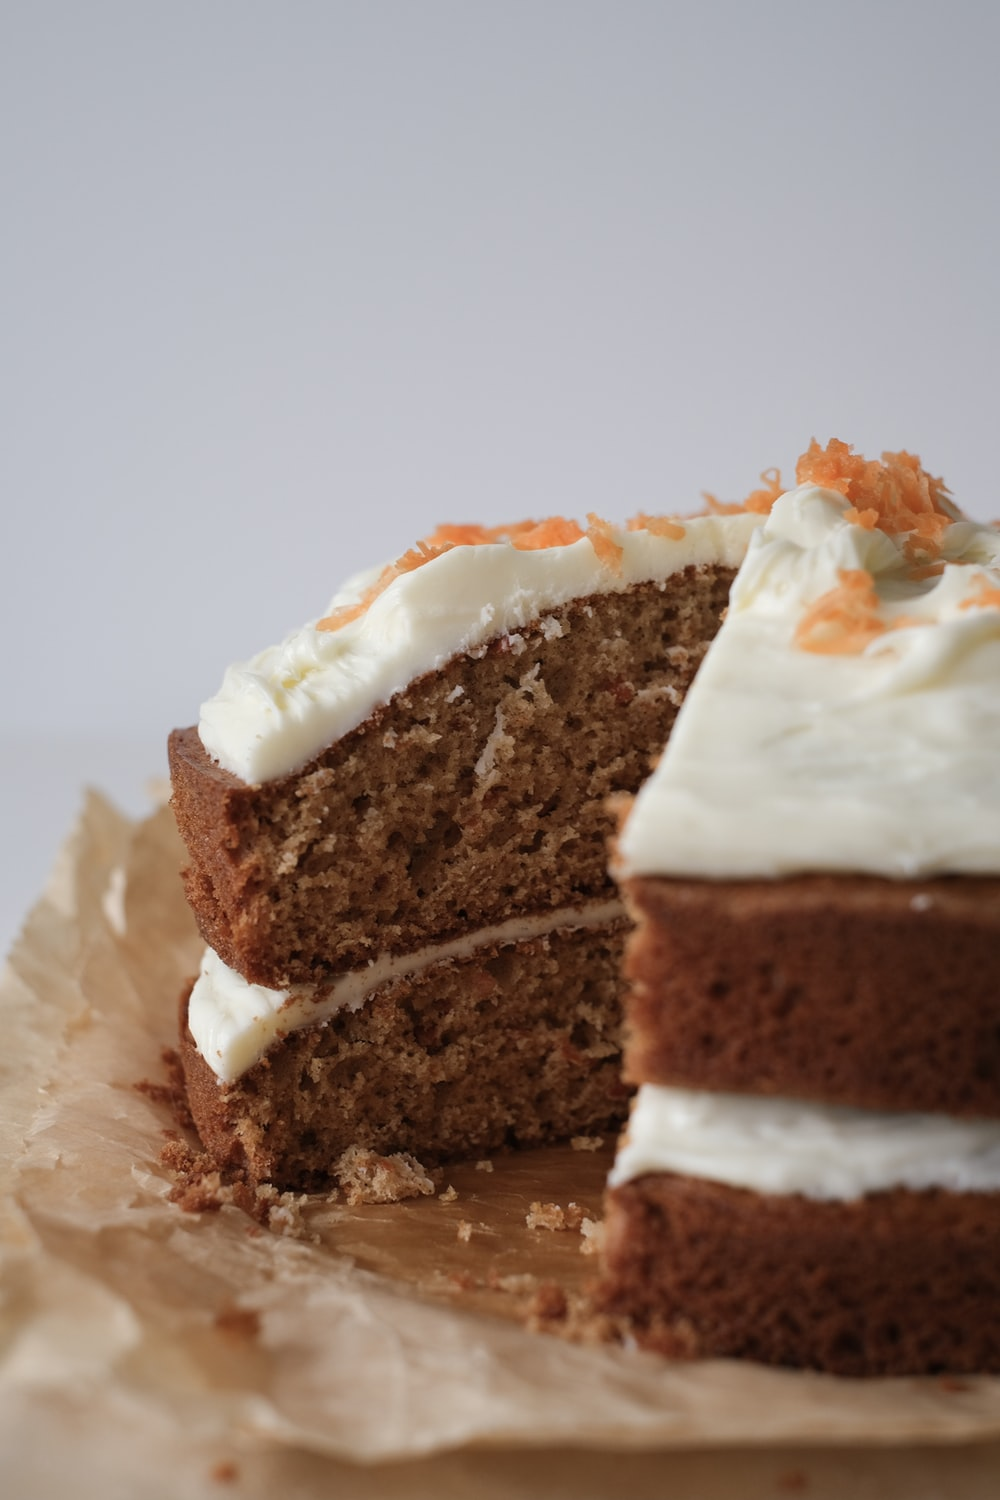 brown and white cake on white paper